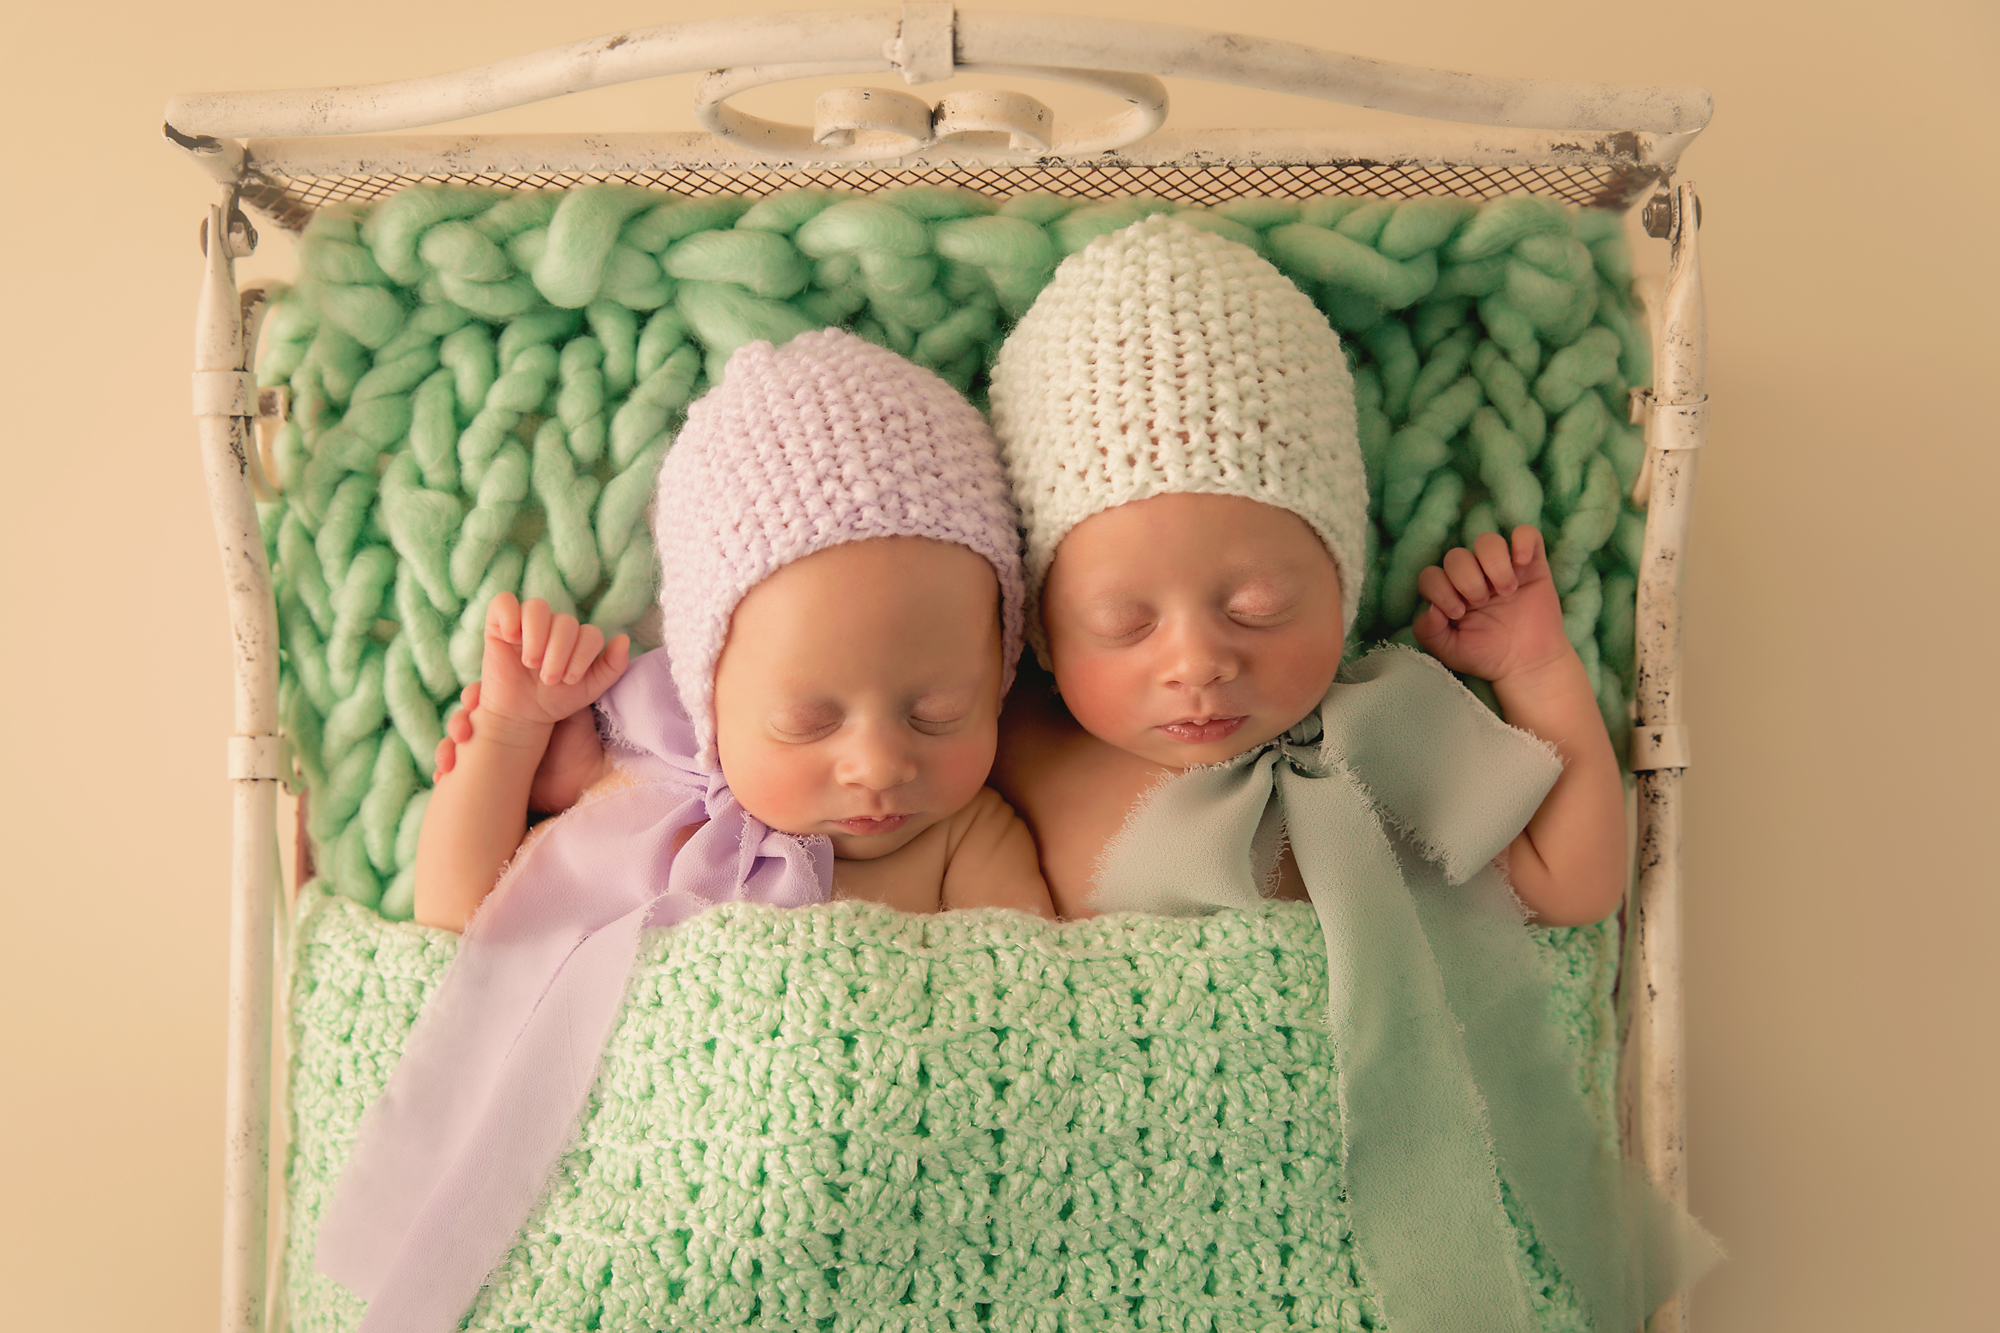 Twins Photography in Calgary, Alberta by Milashka Photography. Twin sisters are sleeping soundly and wearing cute lilac and lime hats